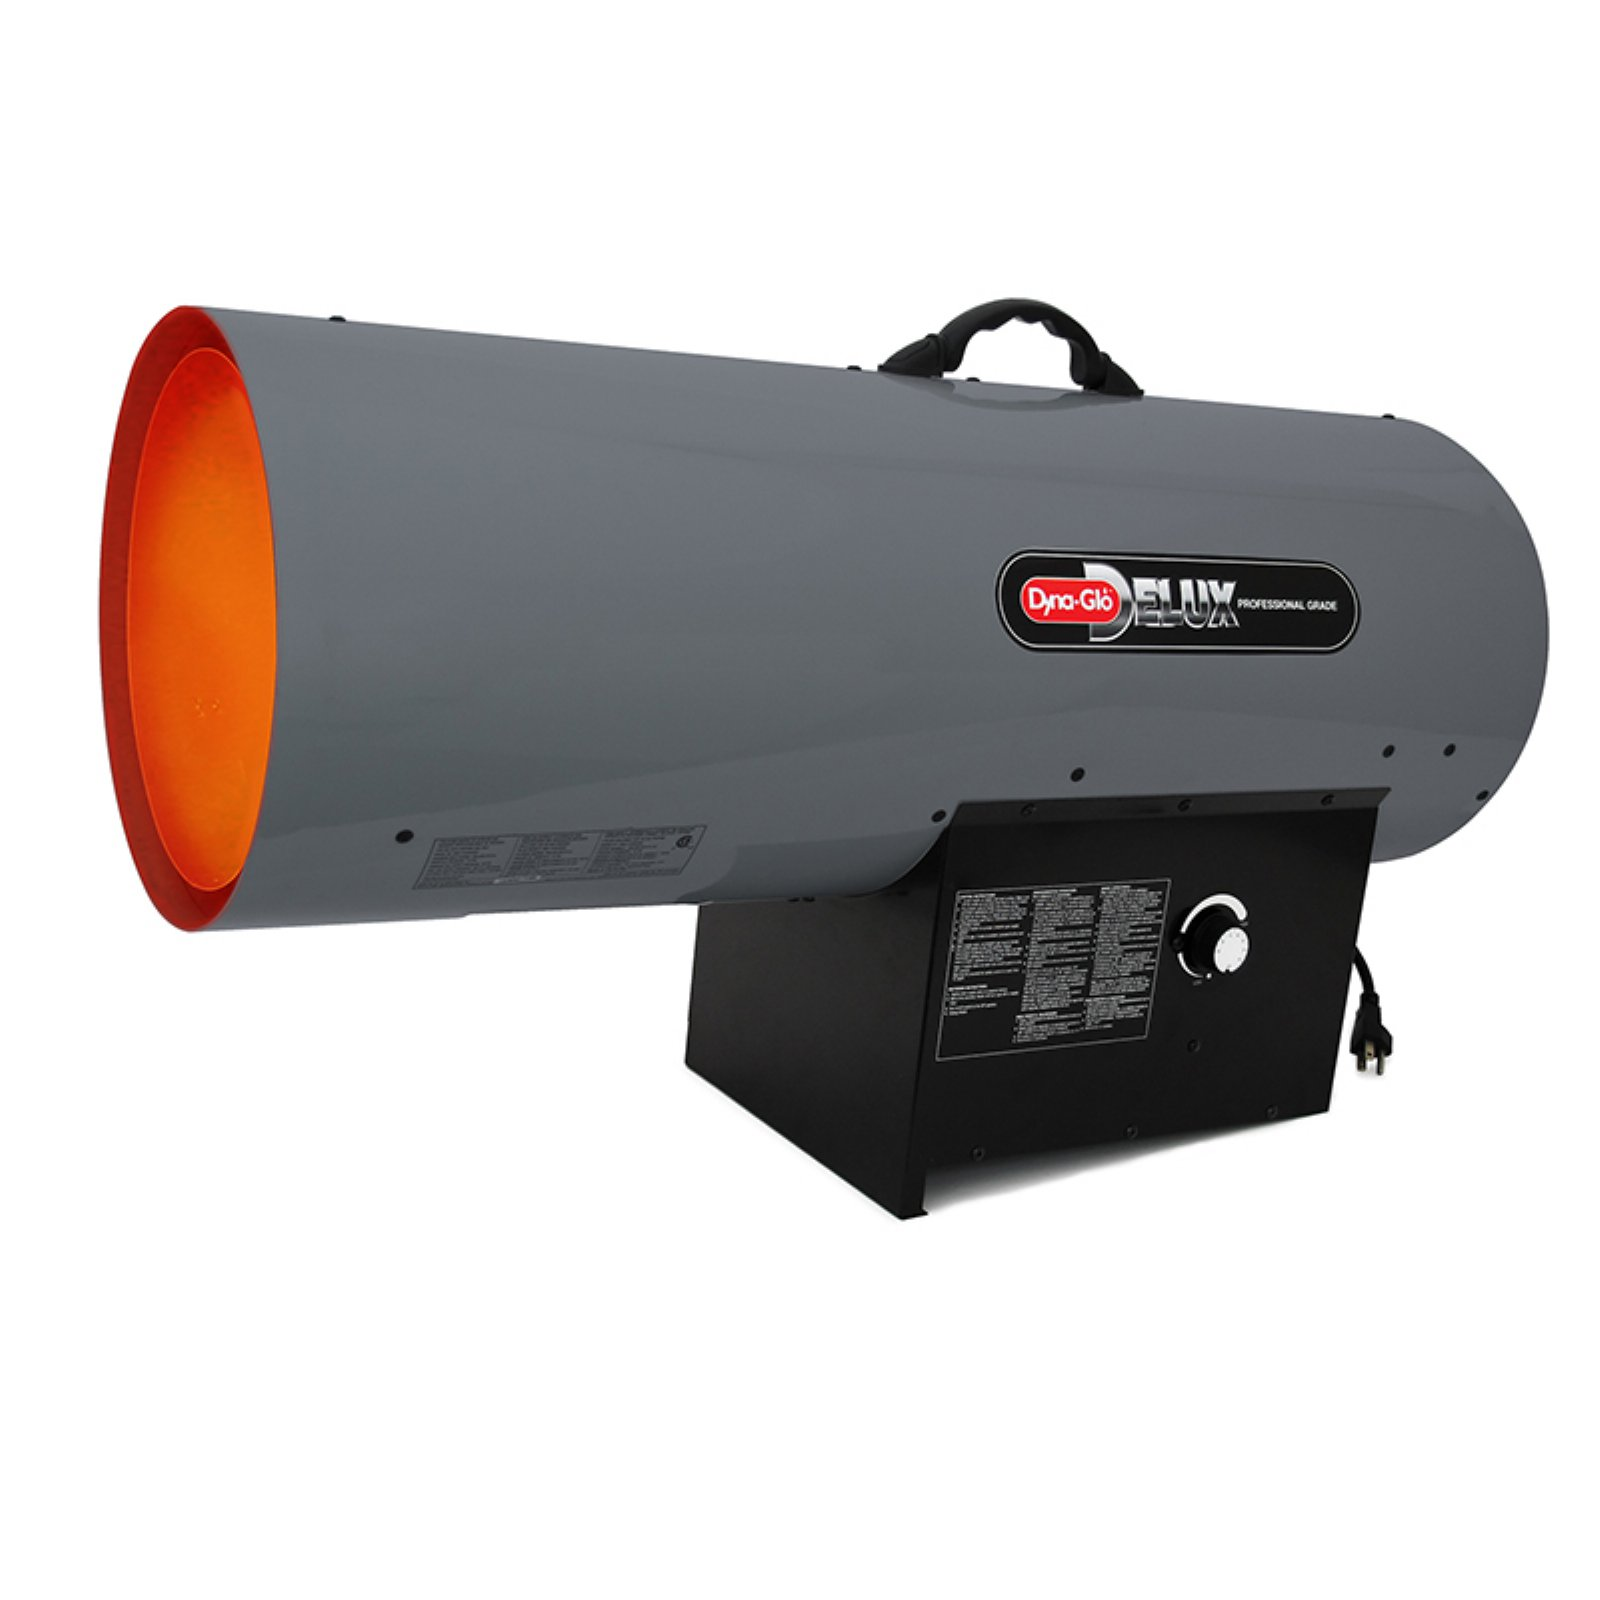 Dyna-Glo  RMC-FA300DGD Portable Propane Gas Powered Forced Air Heater